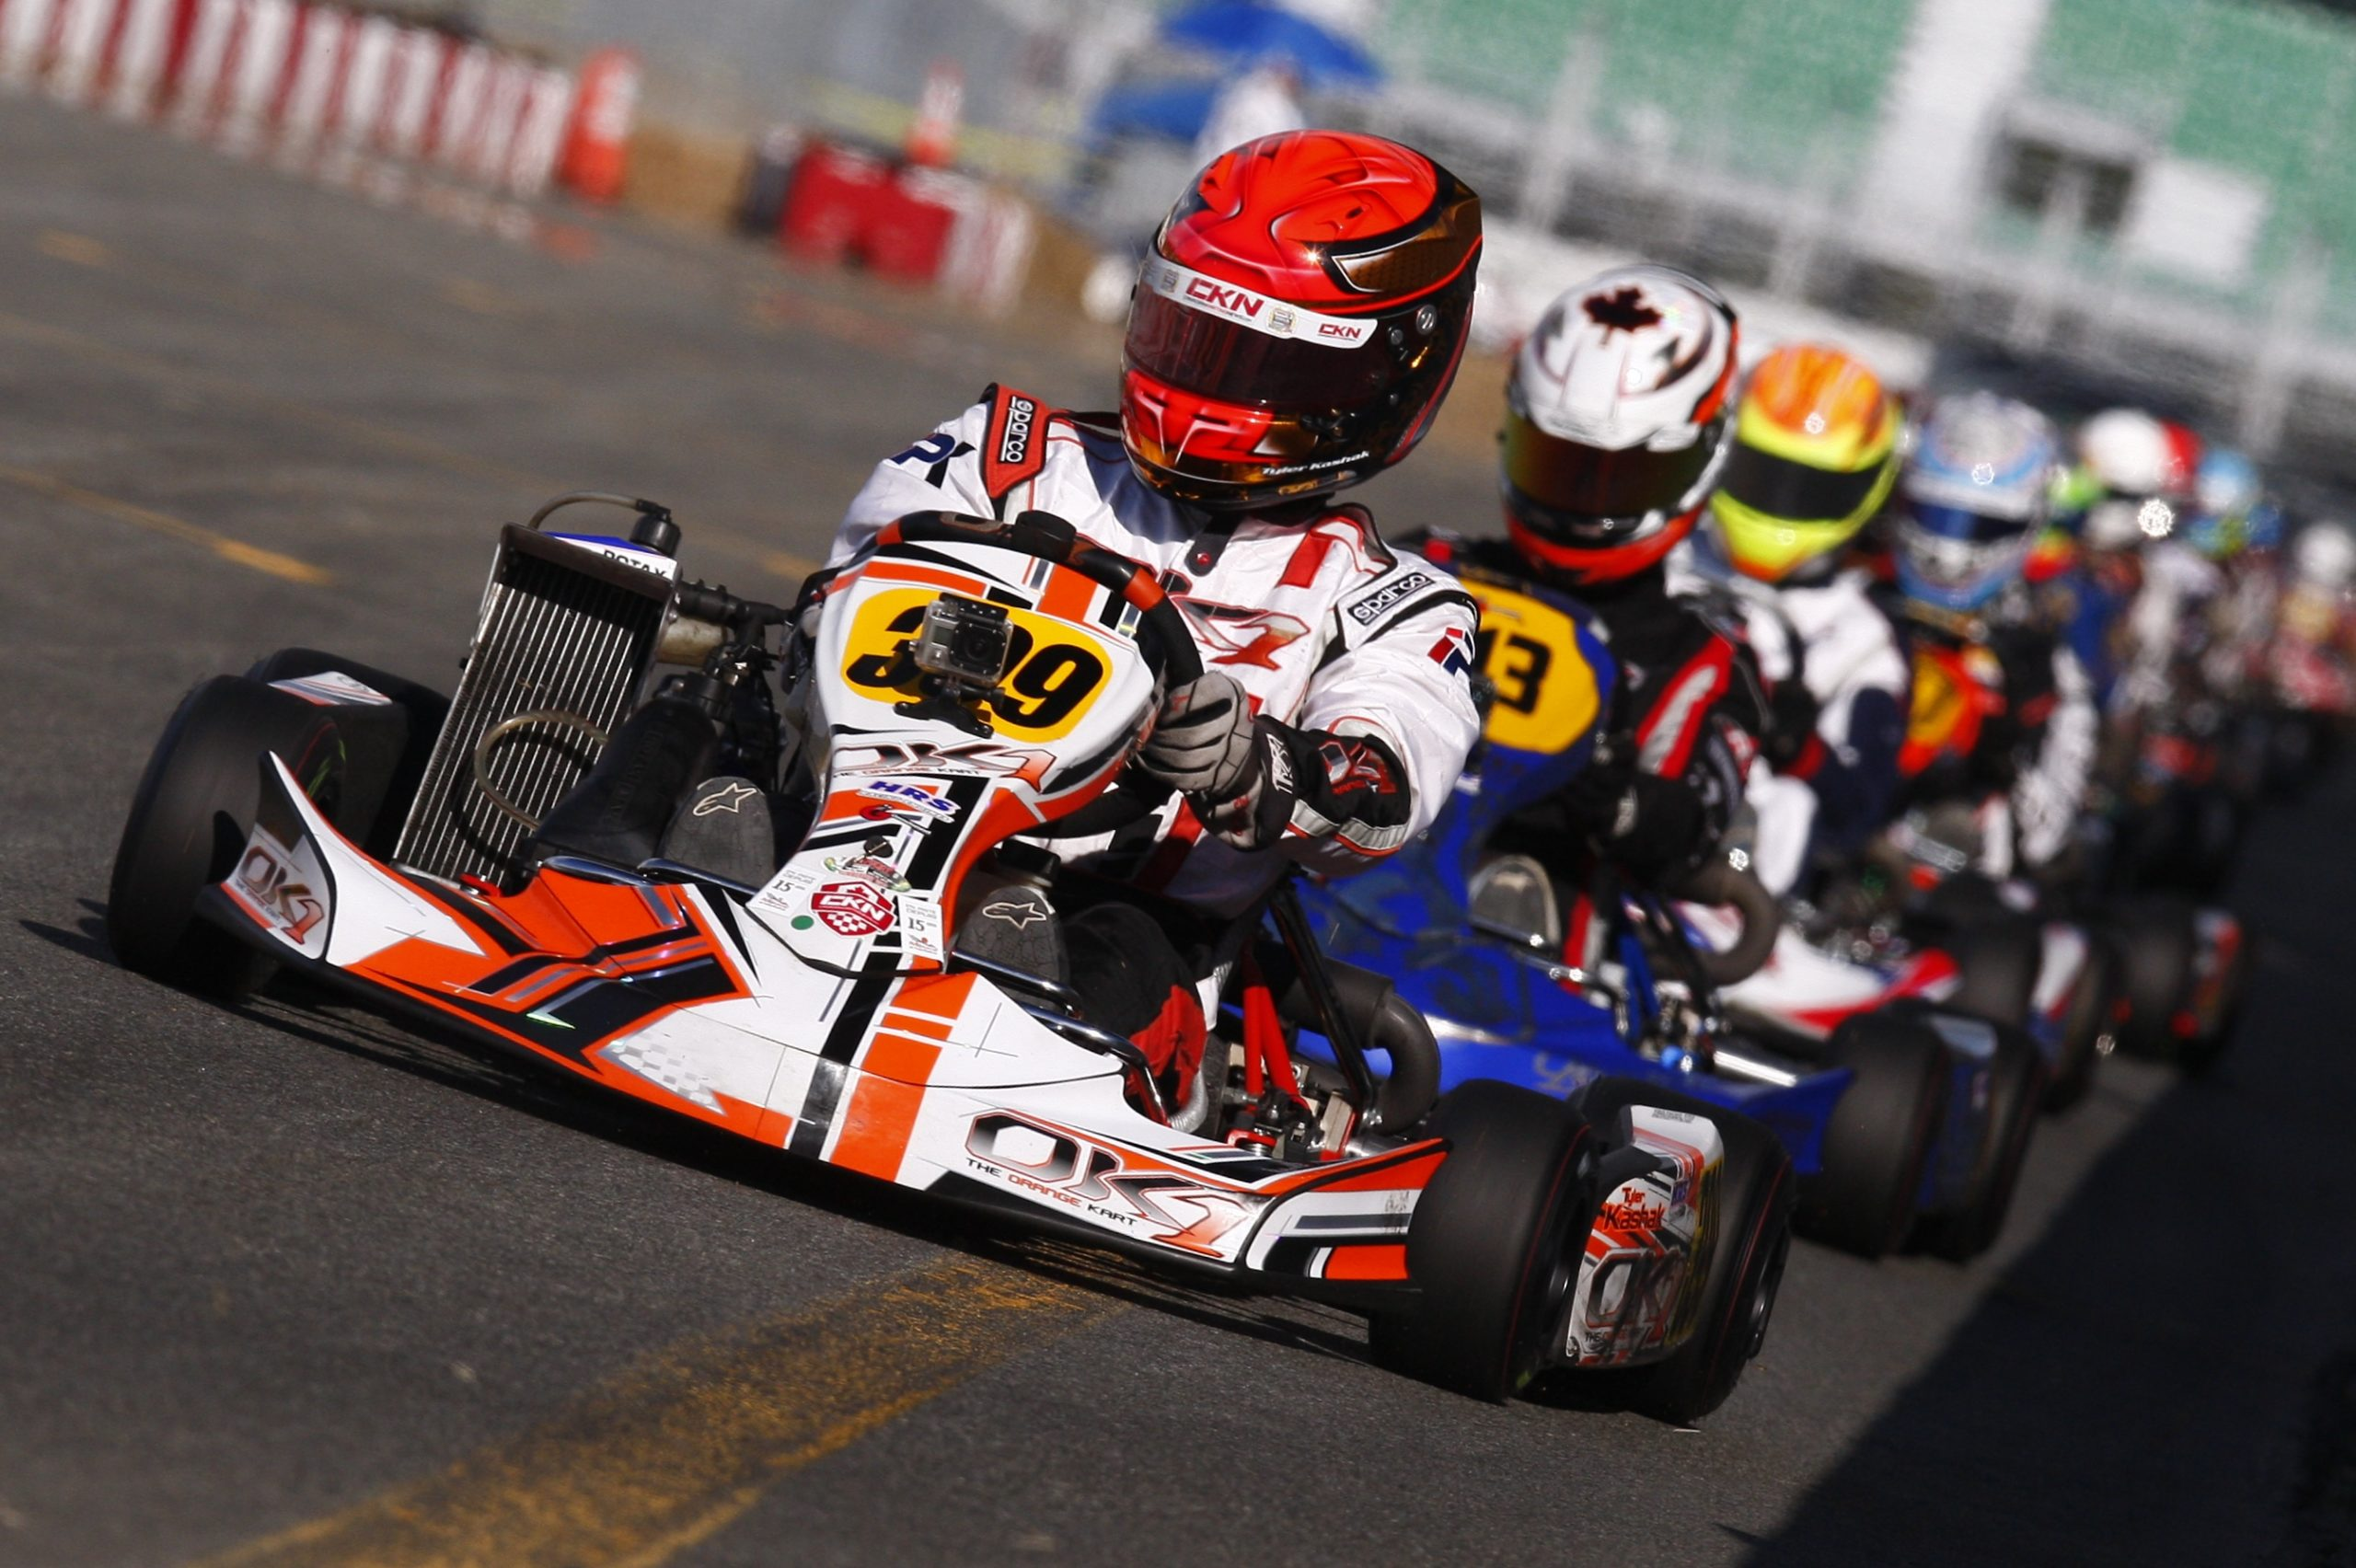 Race Report: IPK North America at ECKC Round 3